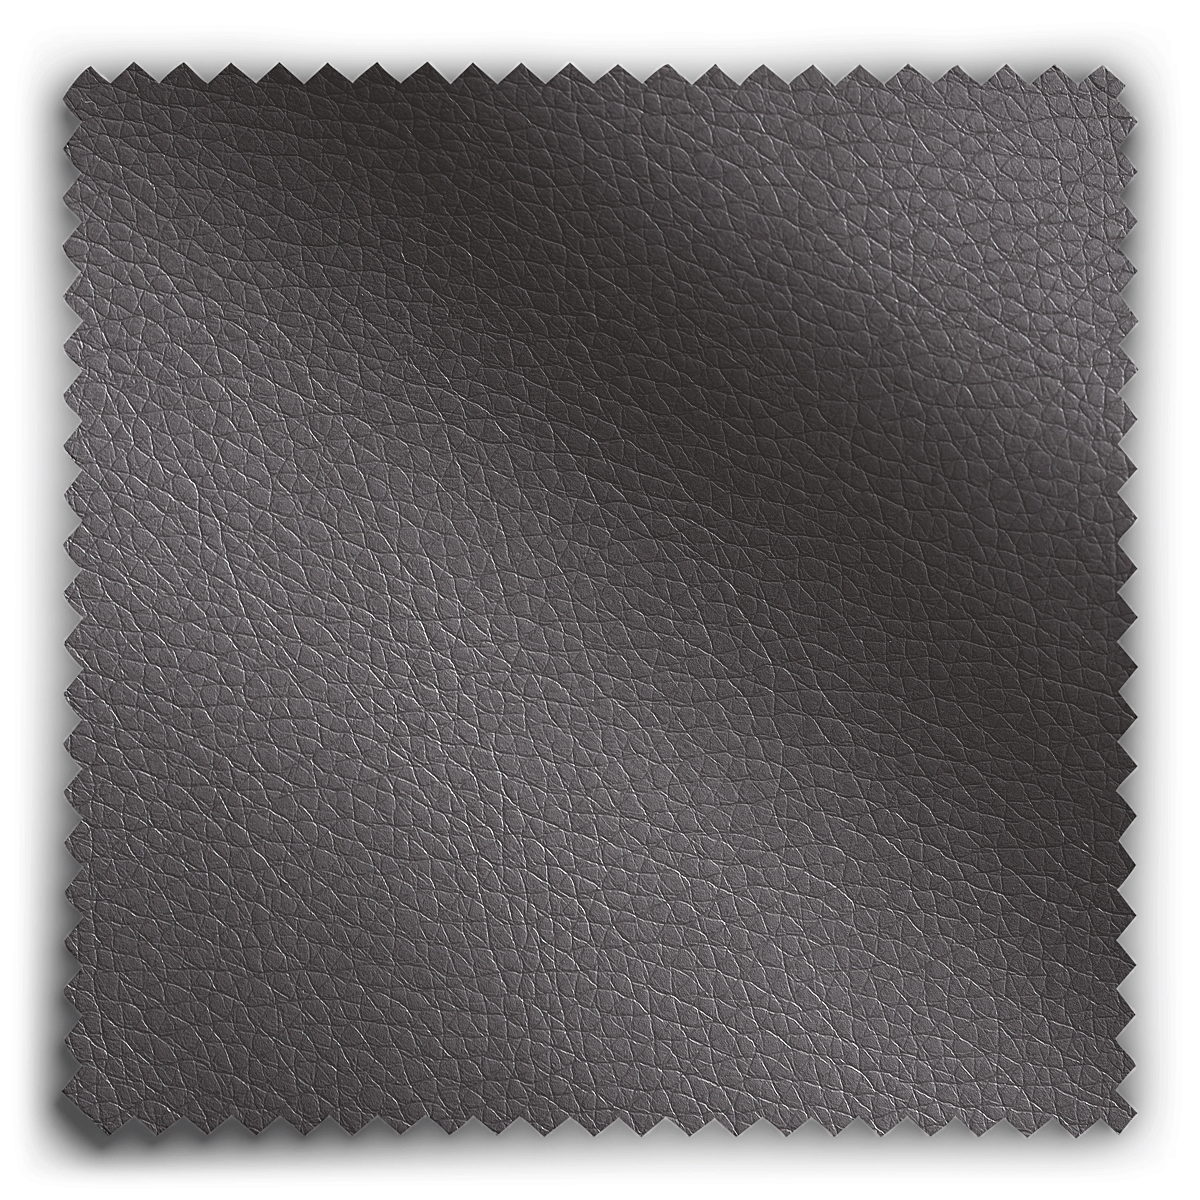 Image of Ash Leather fabric